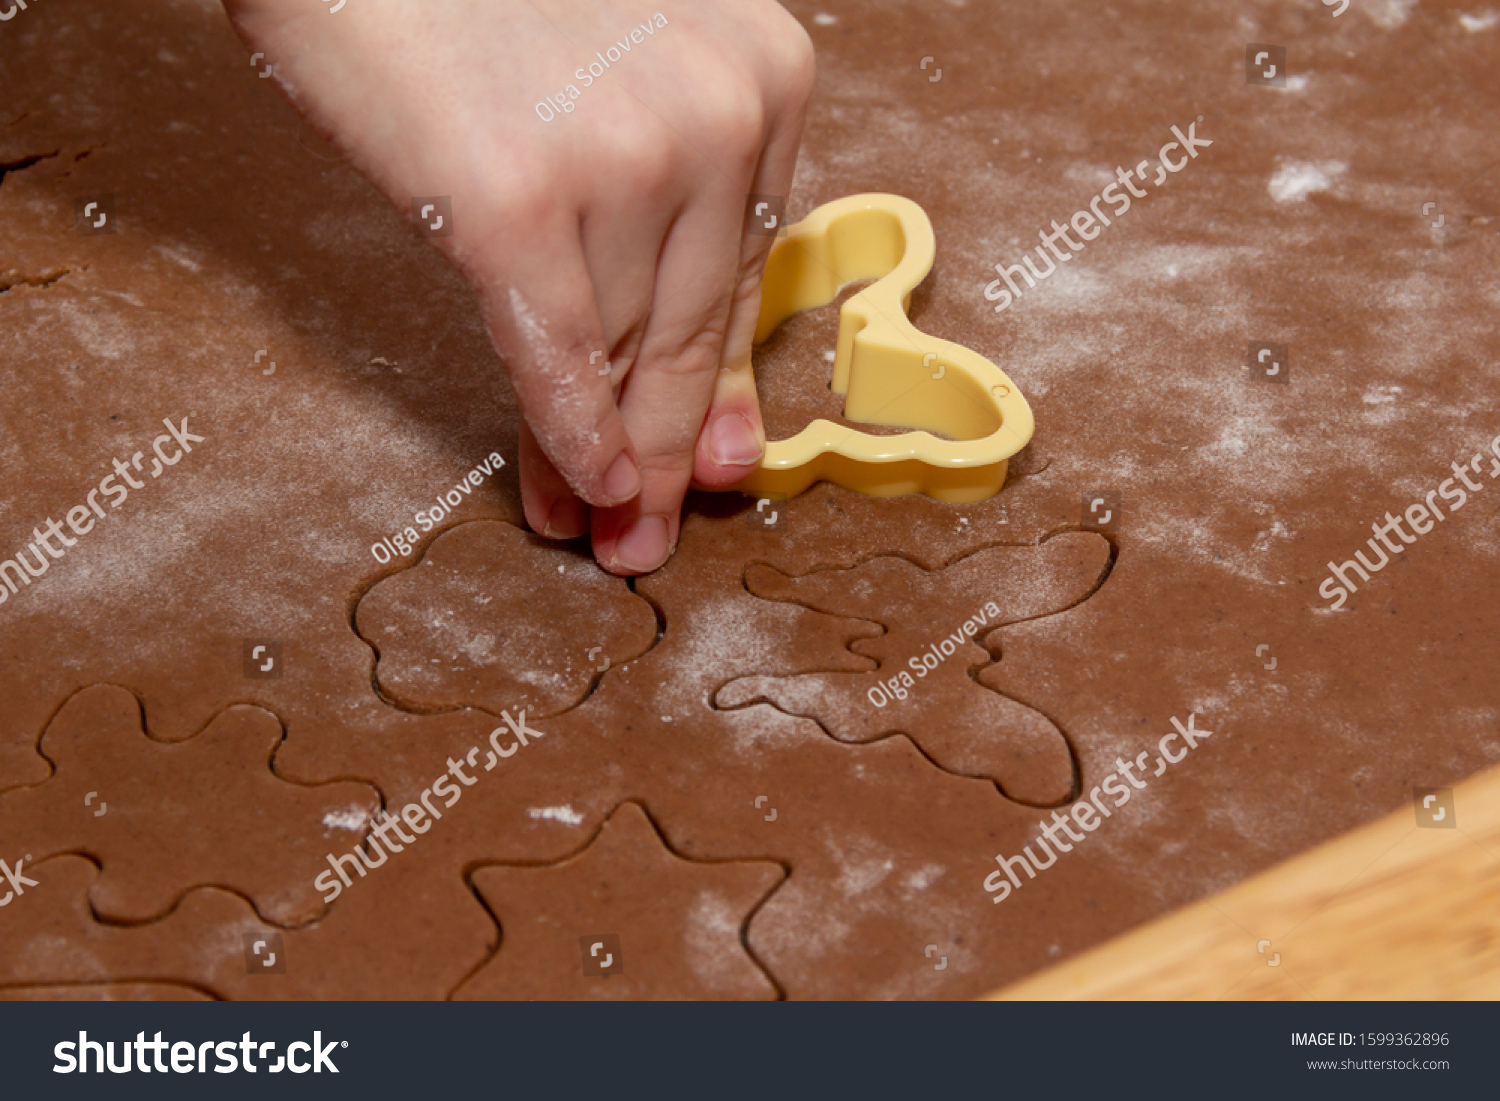 Cutting figures from the dough using special stencils for making ginger Christmas cookies. Children's hands close-up. Home, family prepare for the holidays concept. #1599362896